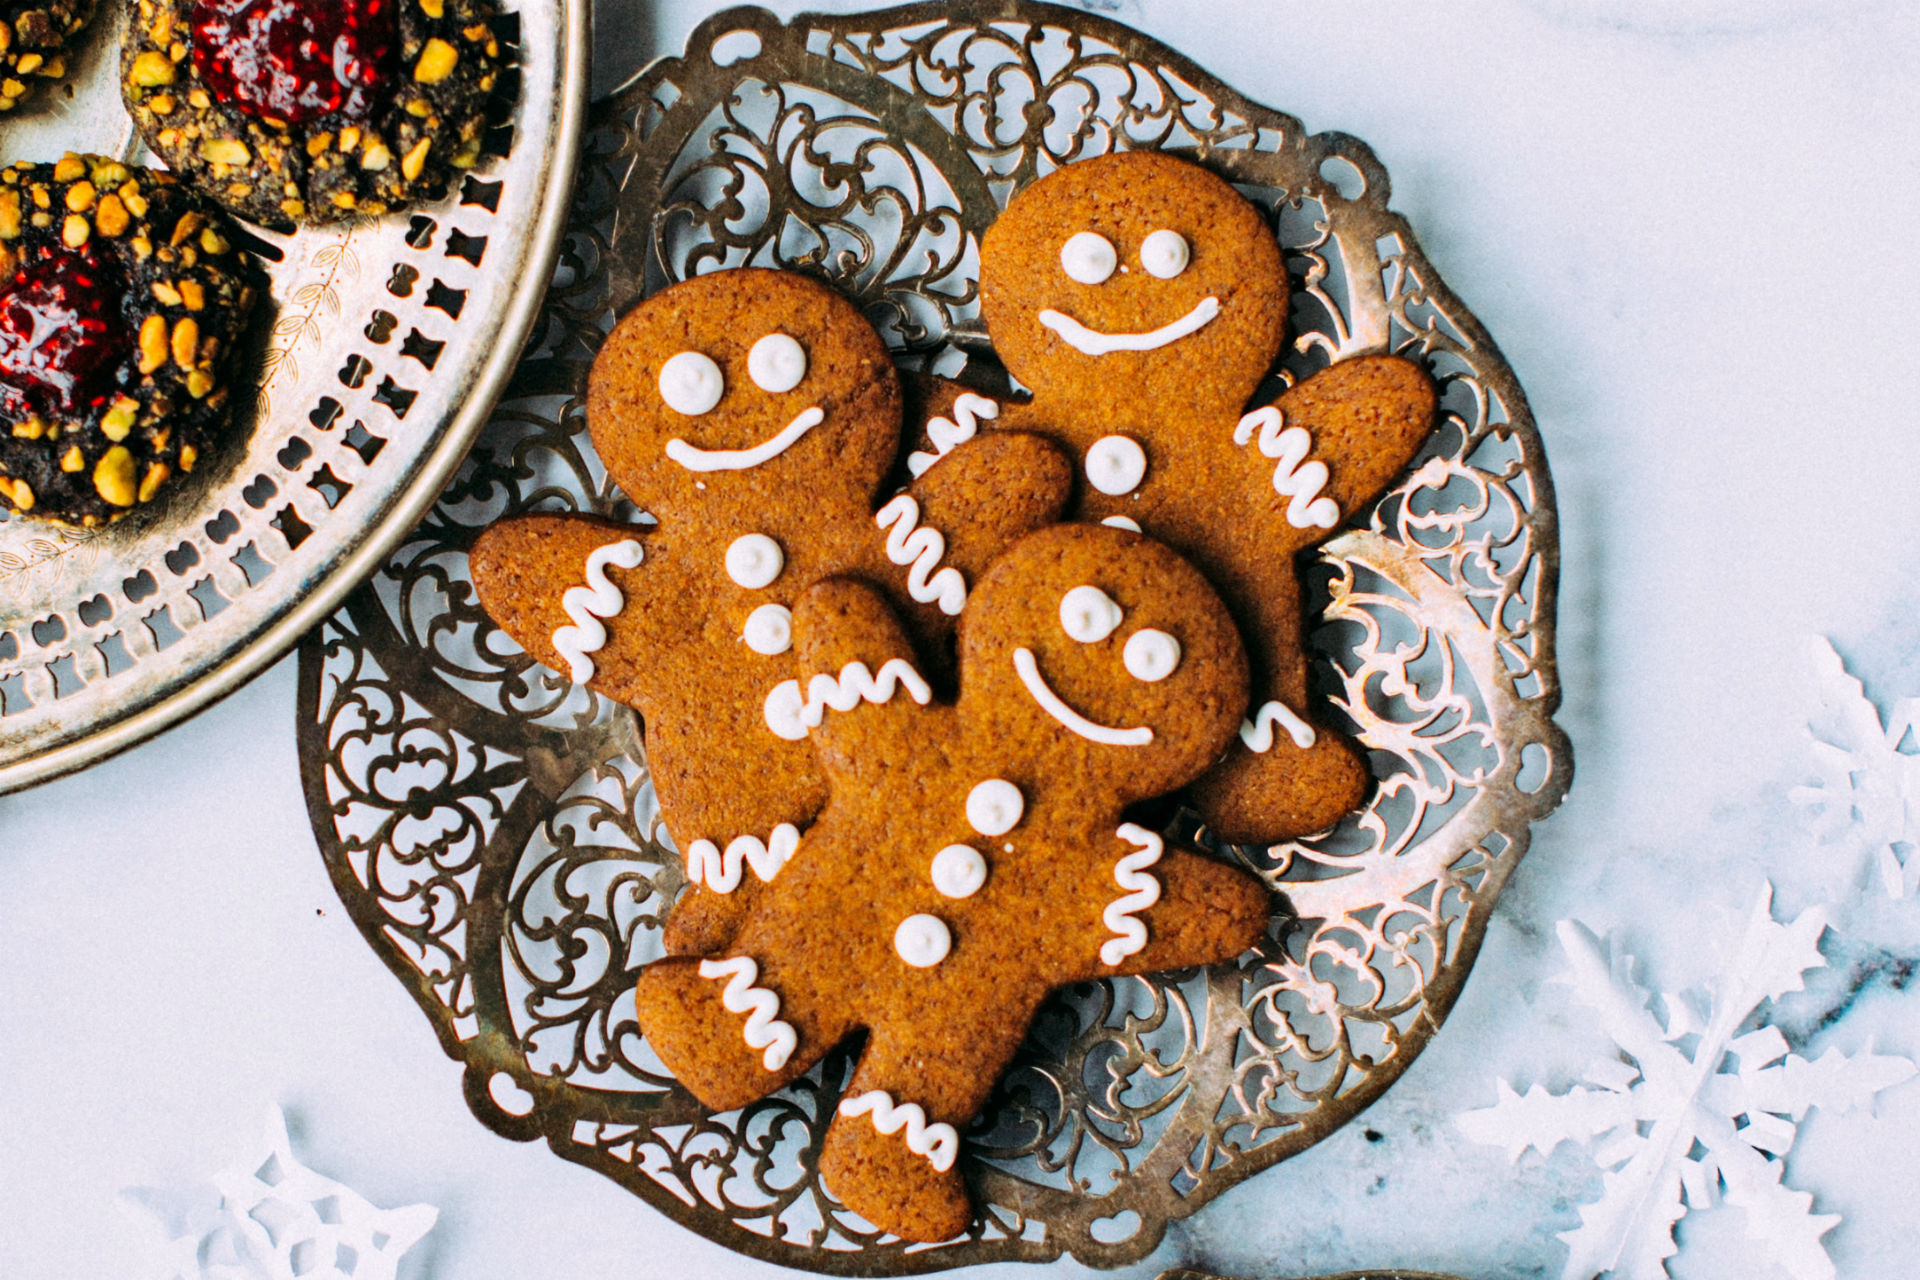 gingerbread men with white icing